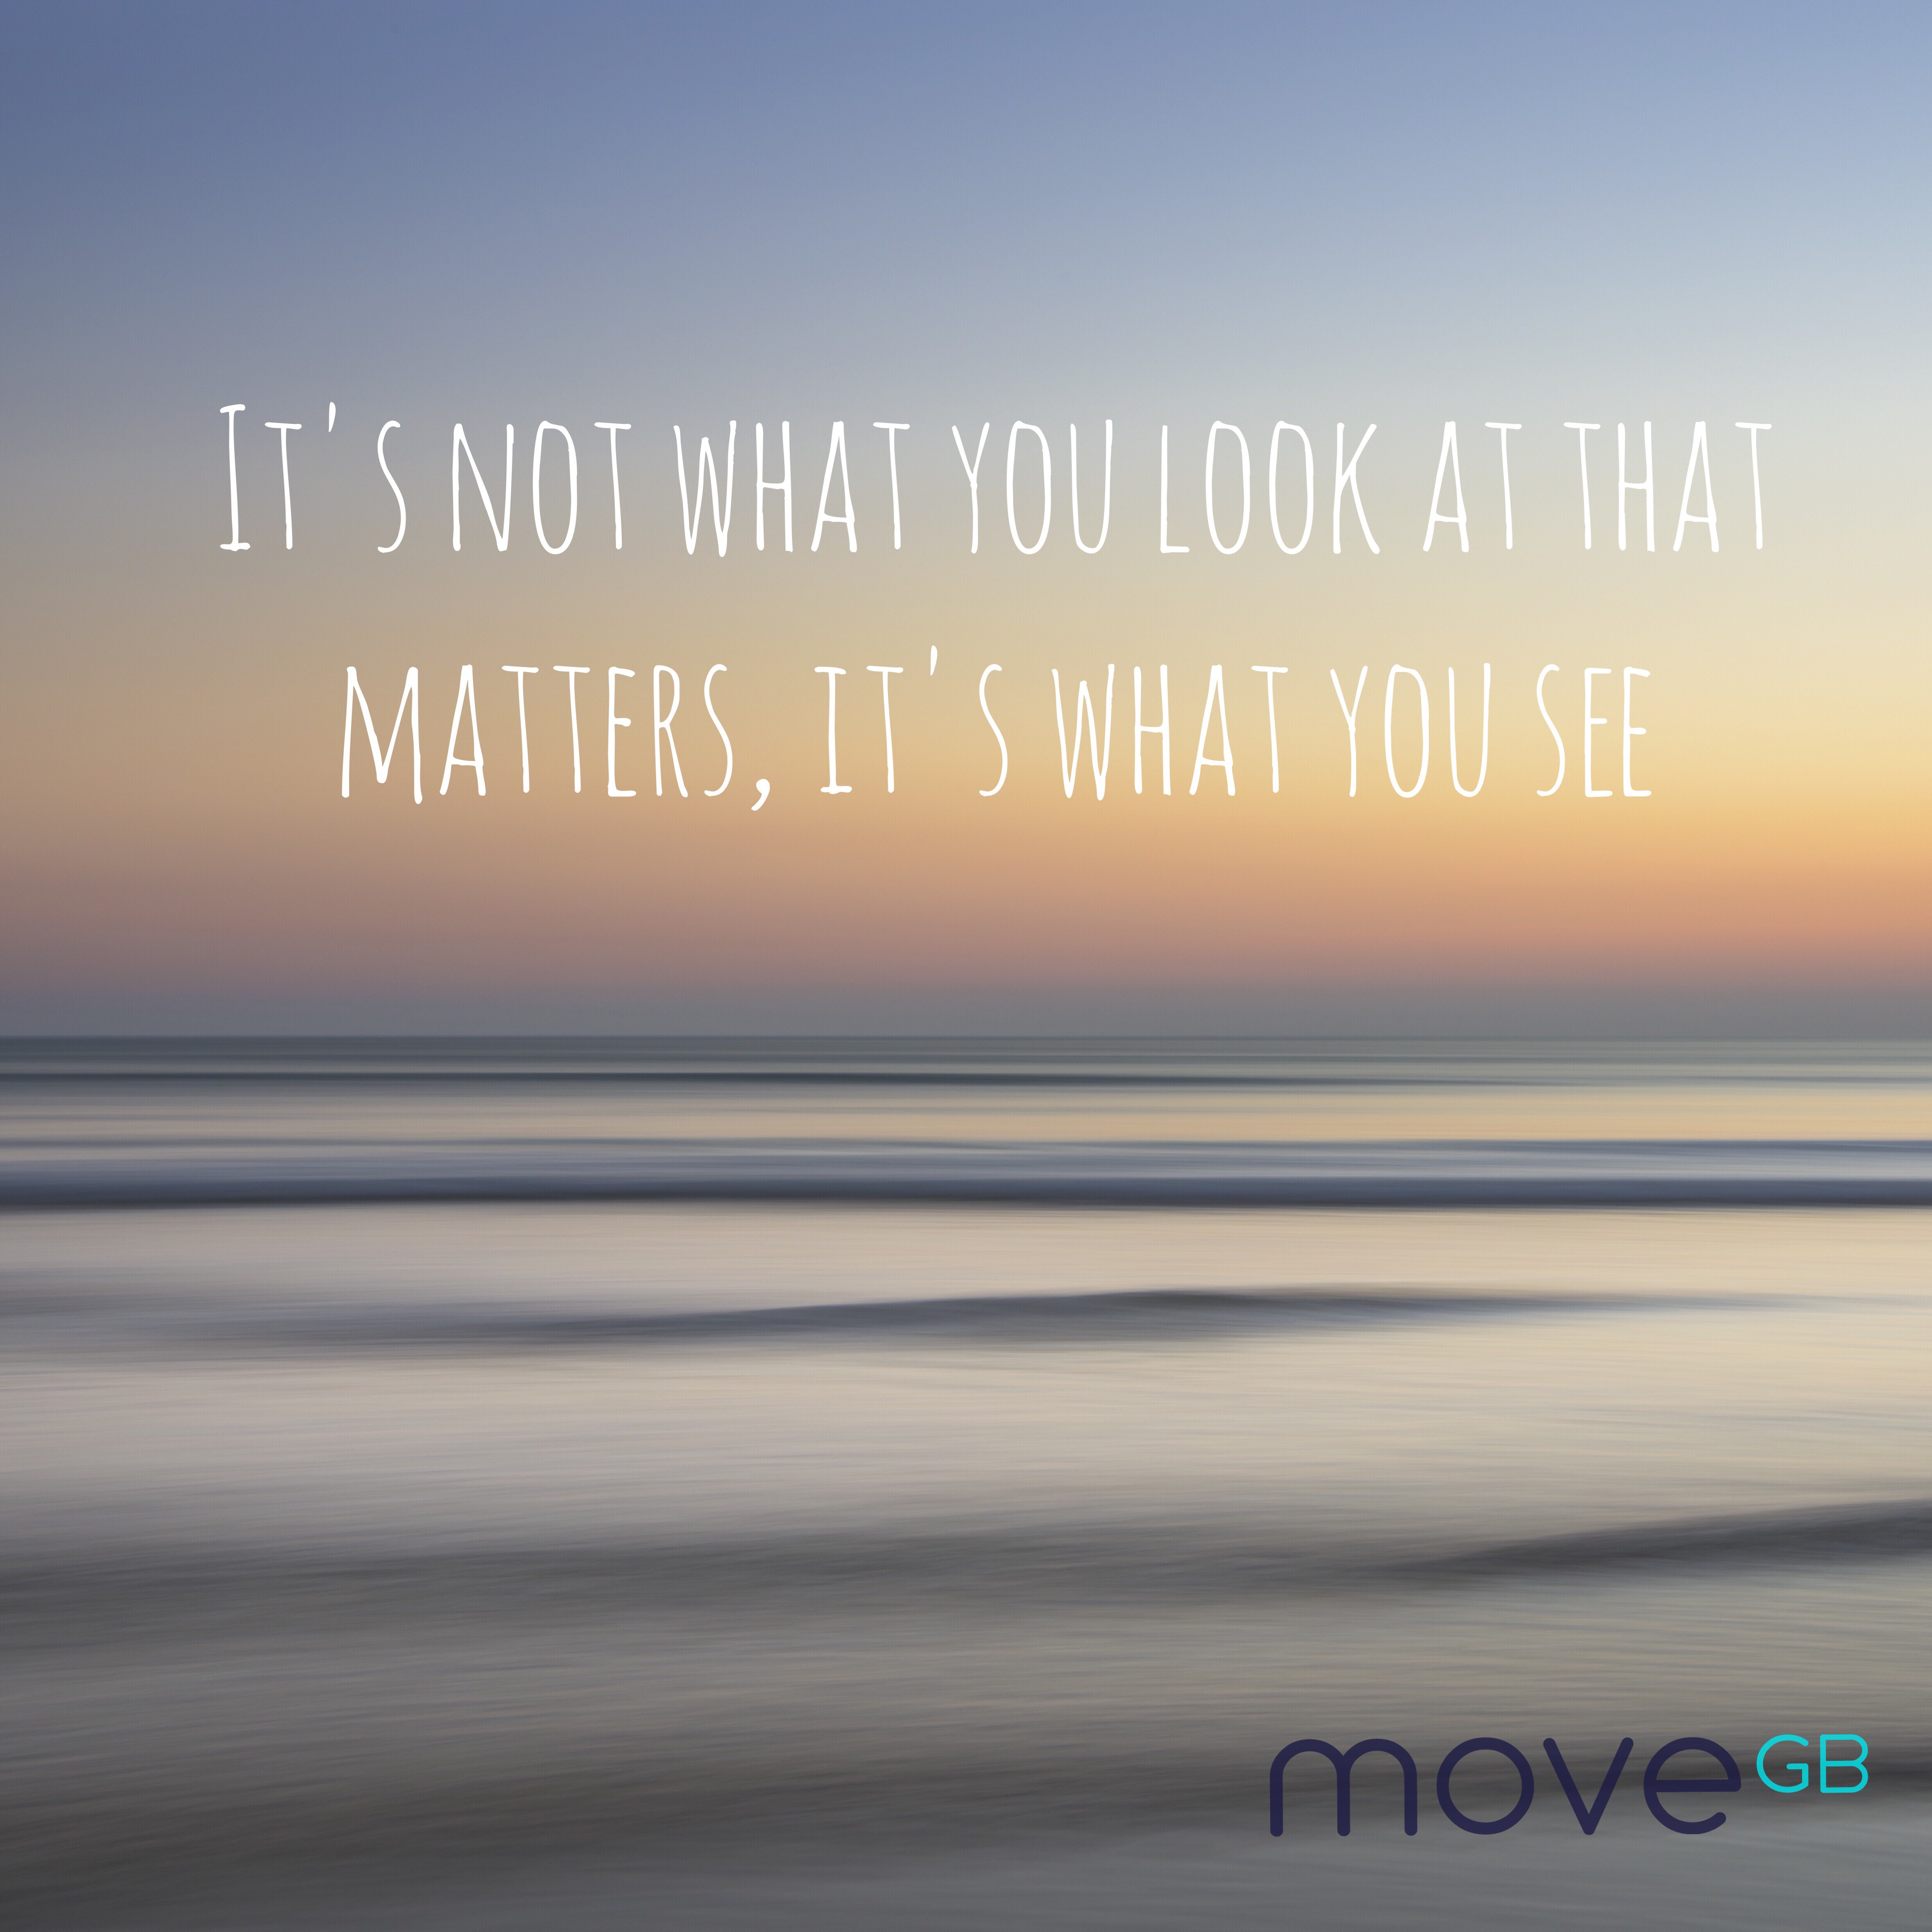 Its_not_what_you_look_at_that_matters_its_what_you_see